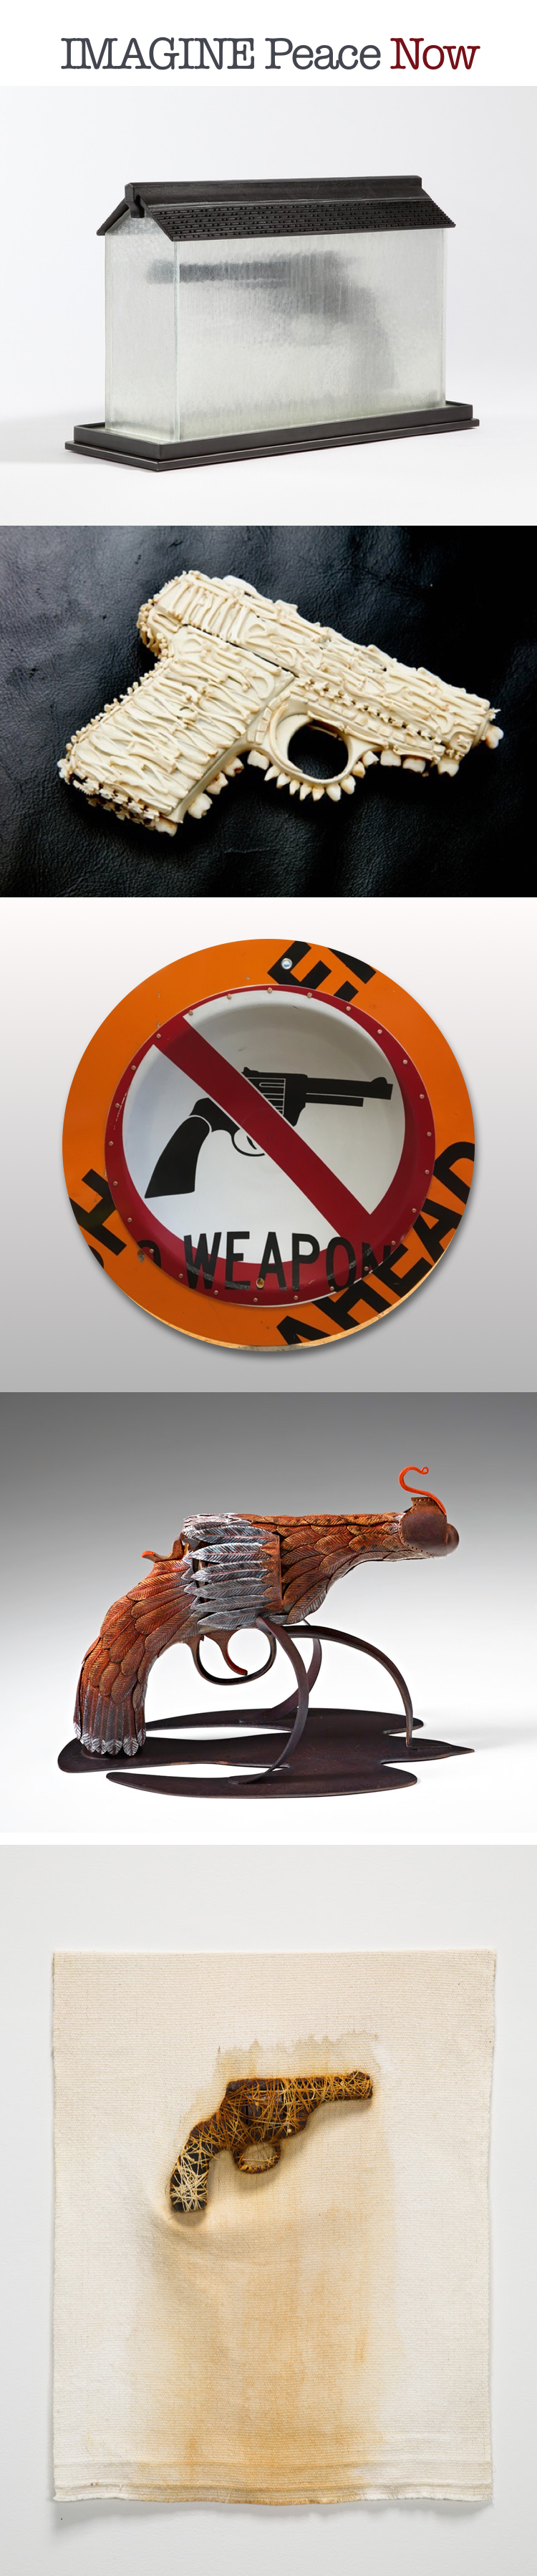 "The ""IMAGINE Peace Now"" exhibition opens November 2016 with 100+ works of compelling, peace-themed artworks made from decommissioned firearms. Organized by Outdoorz Gallery artist Boris Bally, the exhibition is an attempt by artists to call an end to gun violence, an action we wholeheartedly support. The exhibition opens this November at the Wellington B. Gray Gallery at East Carolina University, Greenville, North Carolina and travels to Boston's Society of Arts & Crafts in early 2017. The artists are currently running a kickstarter campaign to fund the comprehensive catalogue. Your support is welcome !"